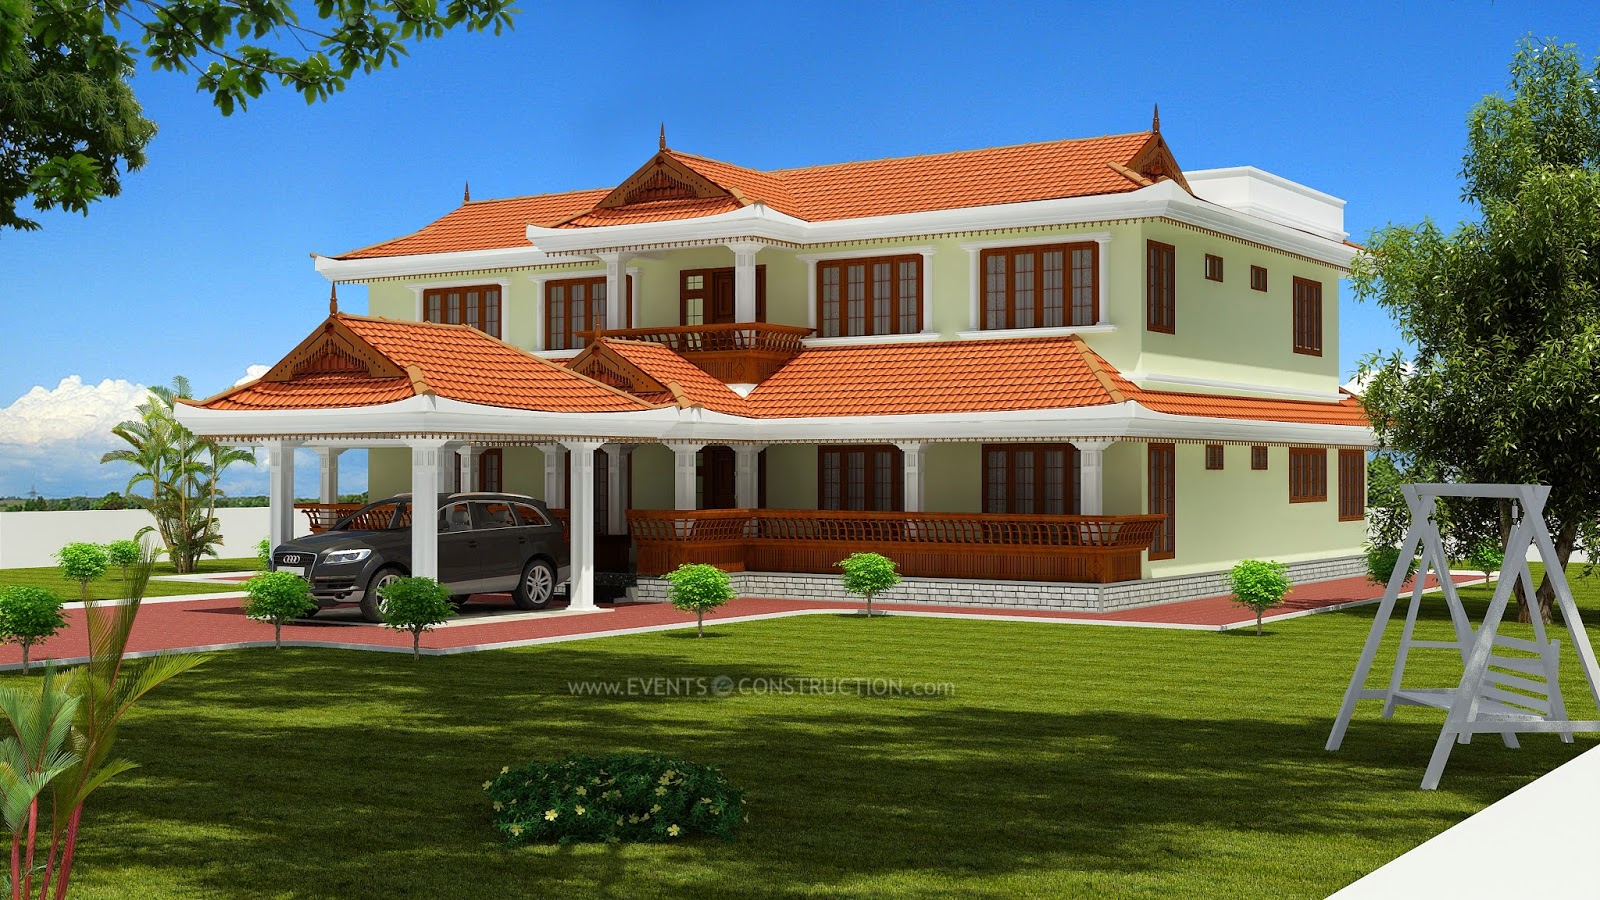 Evens construction pvt ltd traditional style sloped roof house 4000 - Houses atticsquare meters ...